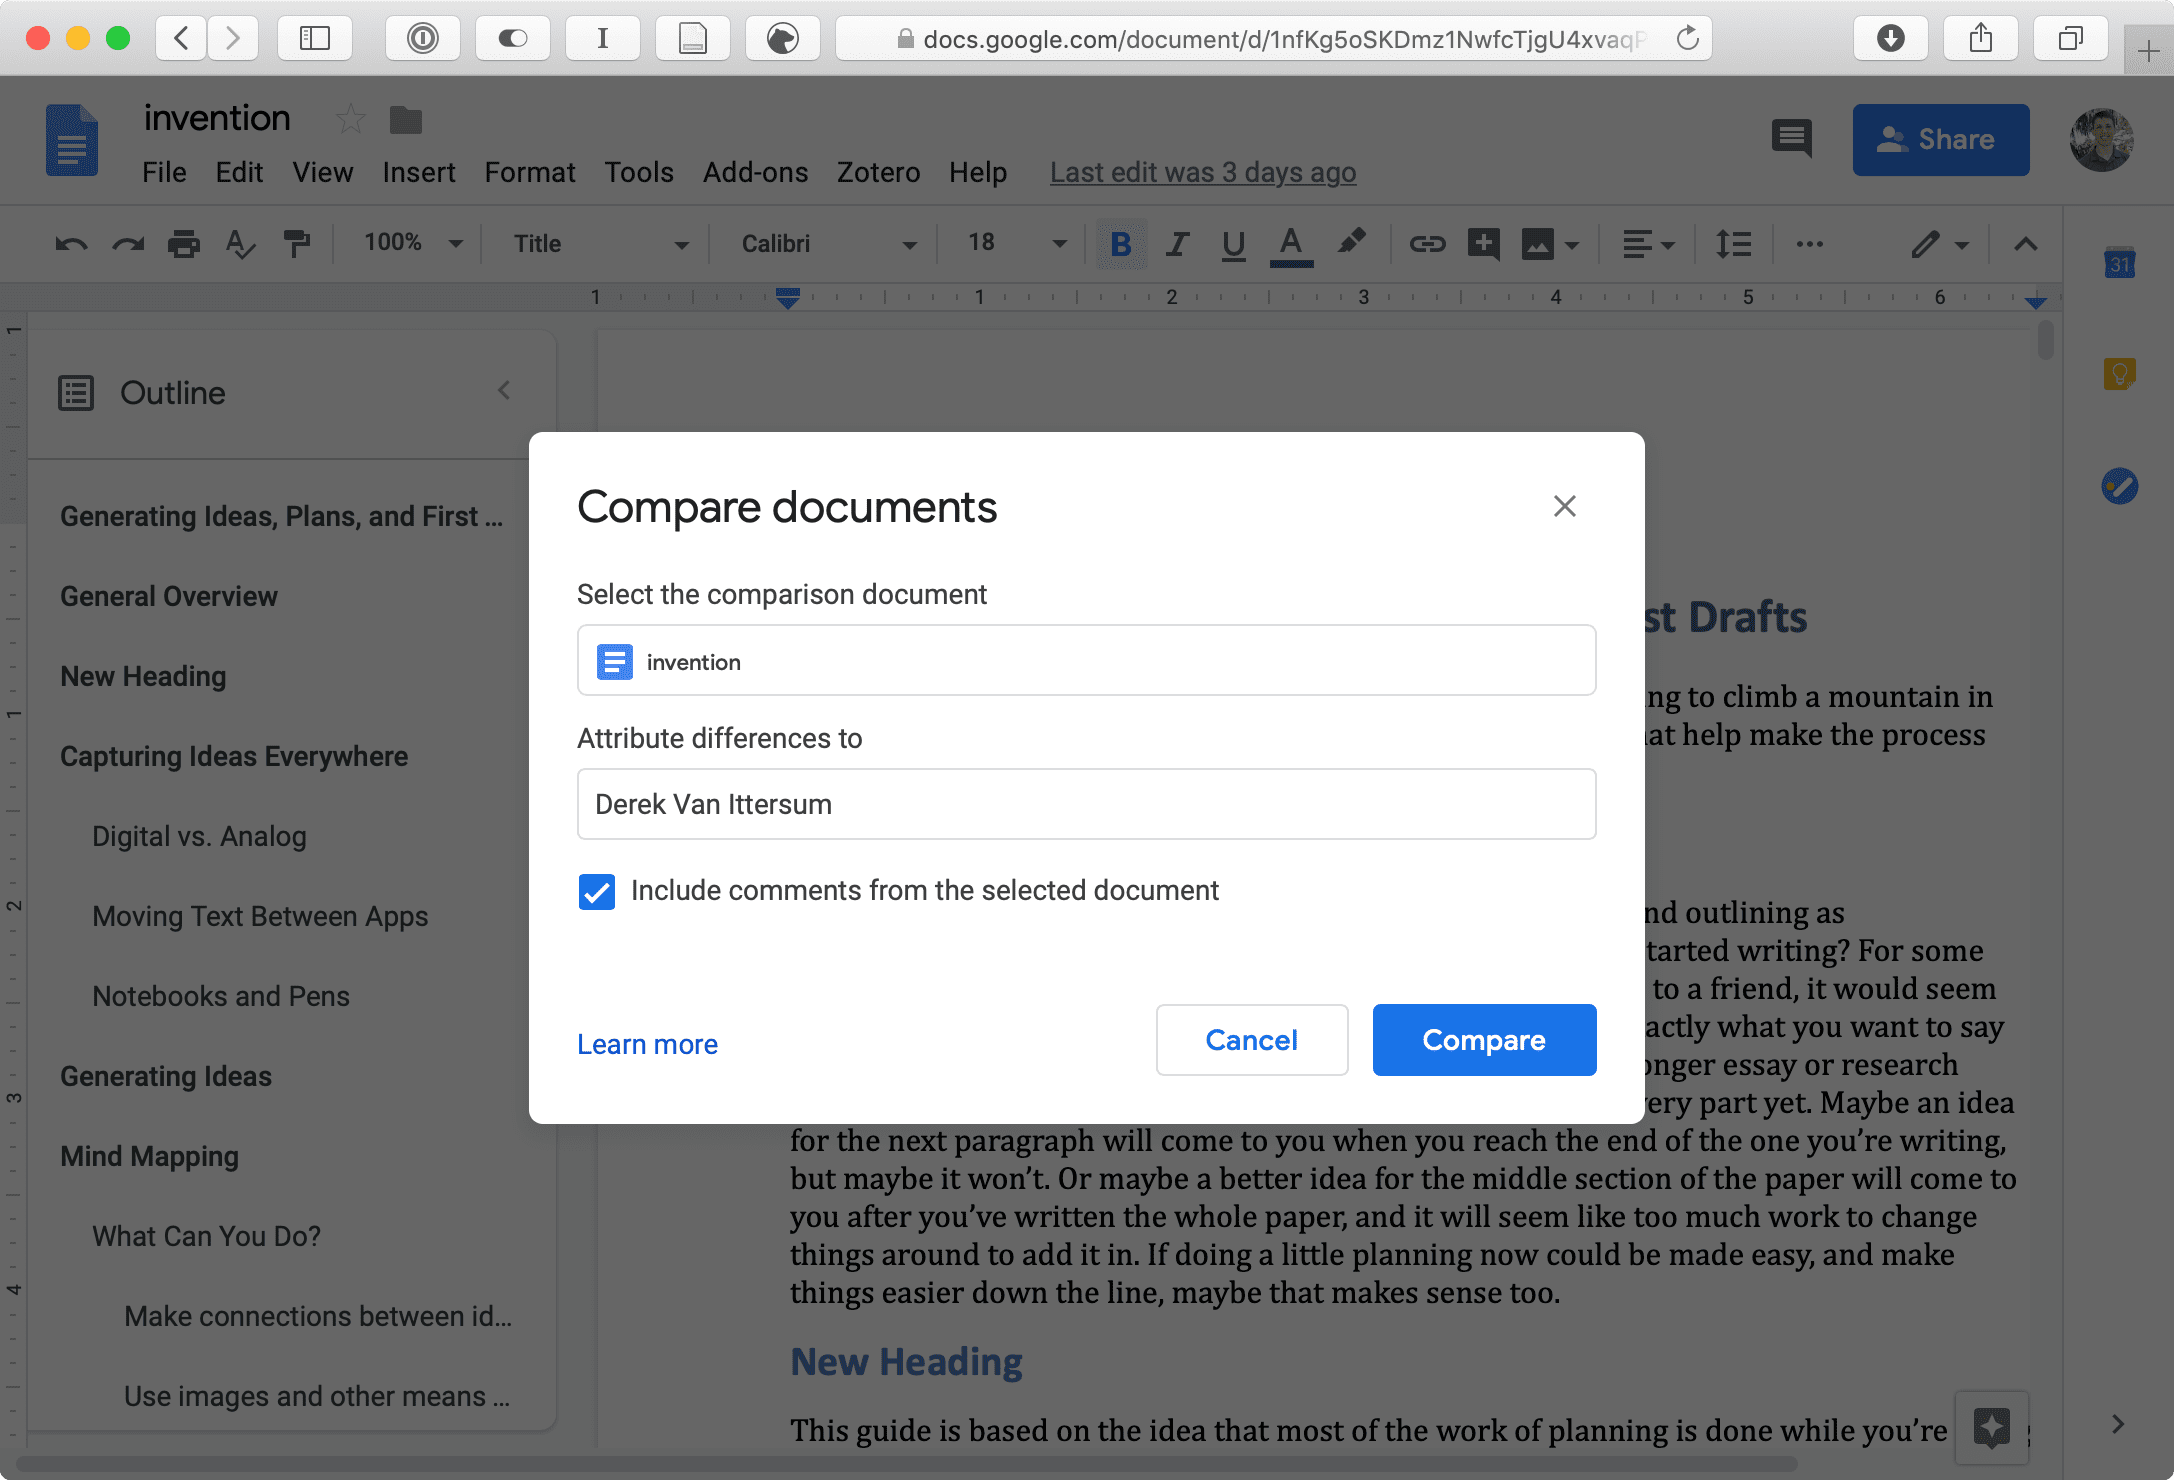 Comparing documents in Google Docs.